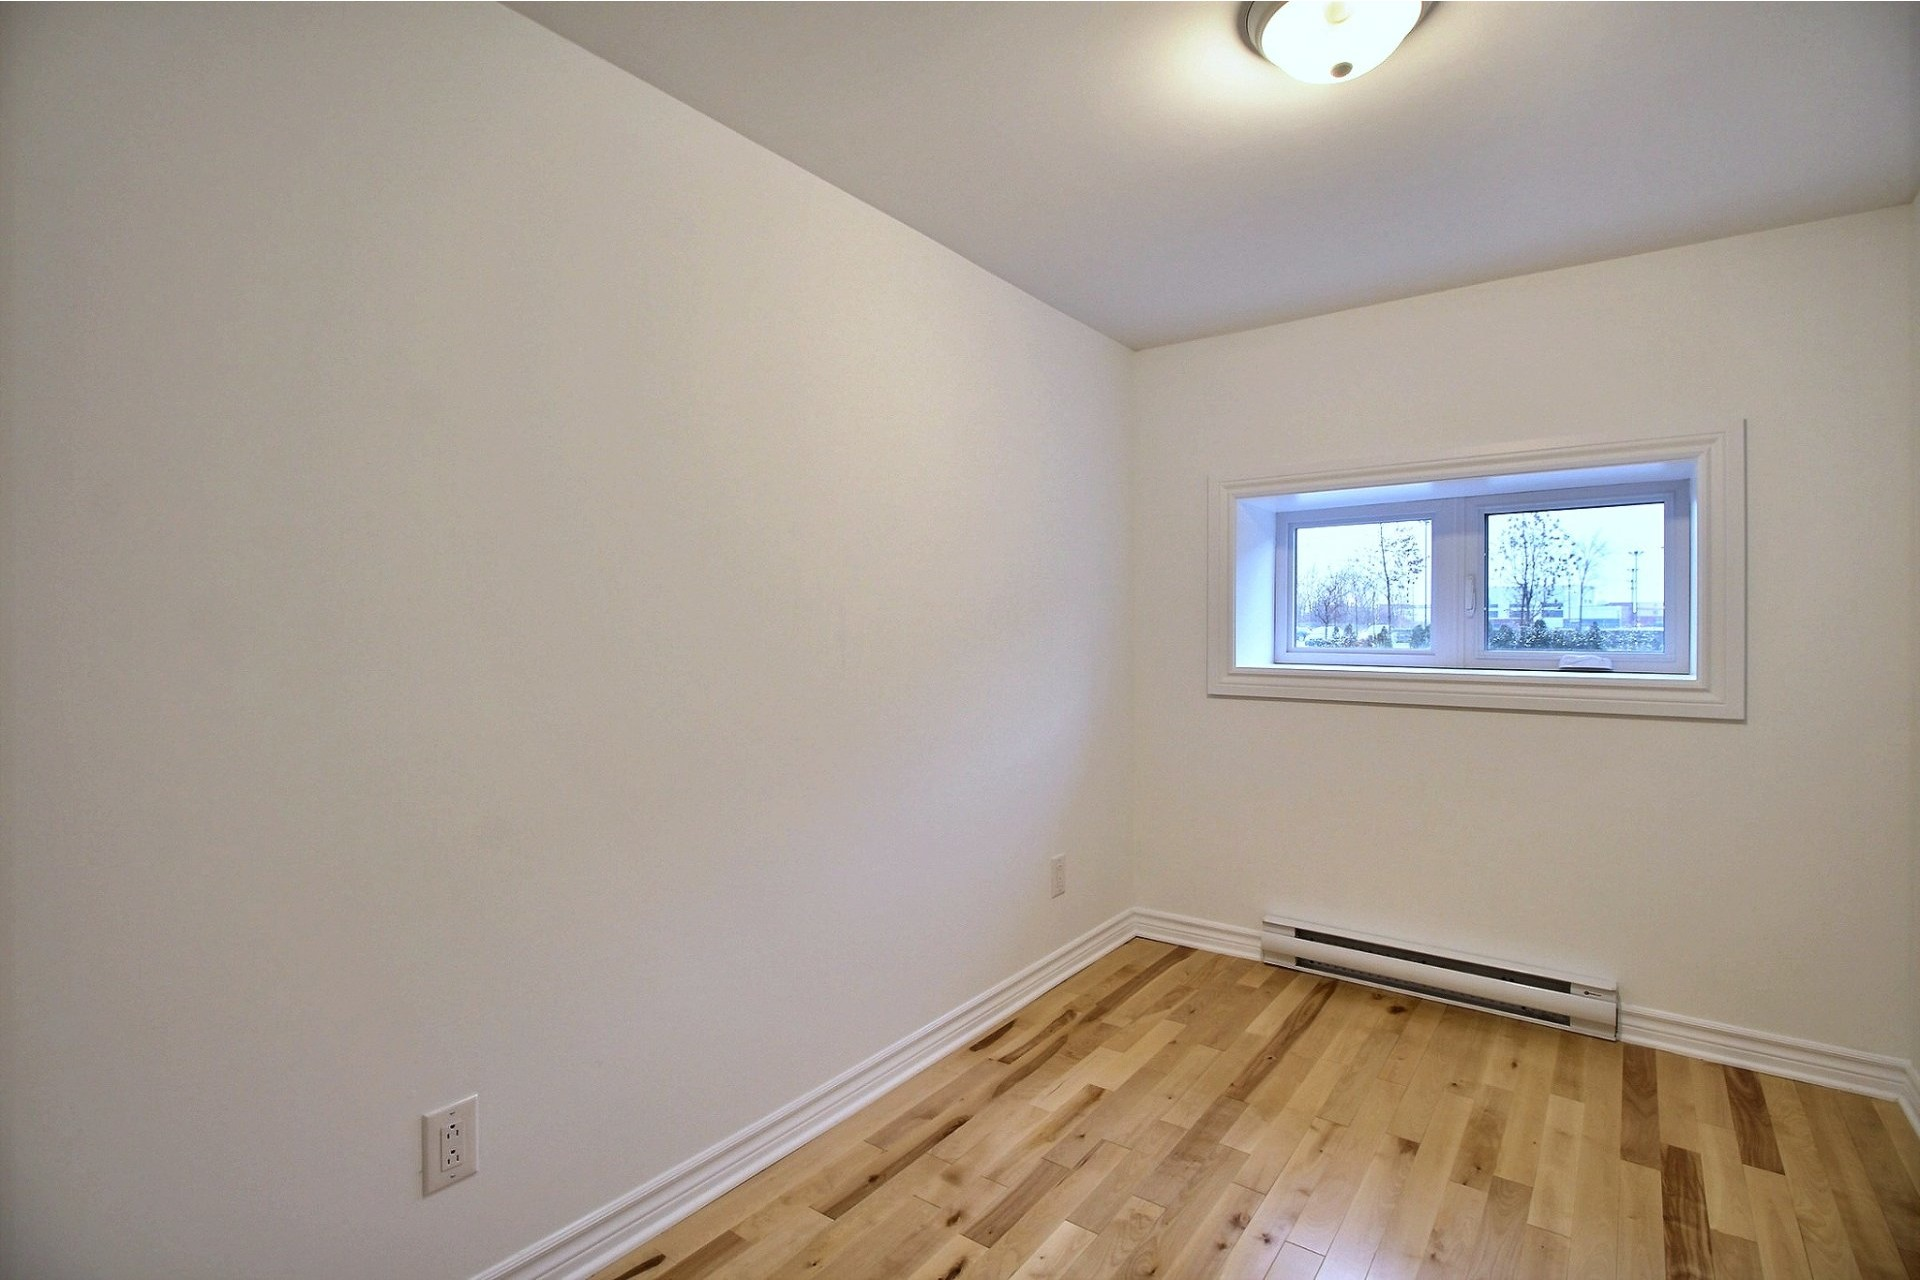 House For sale Montréal Mercier/Hochelaga-Maisonneuve  - 10 rooms